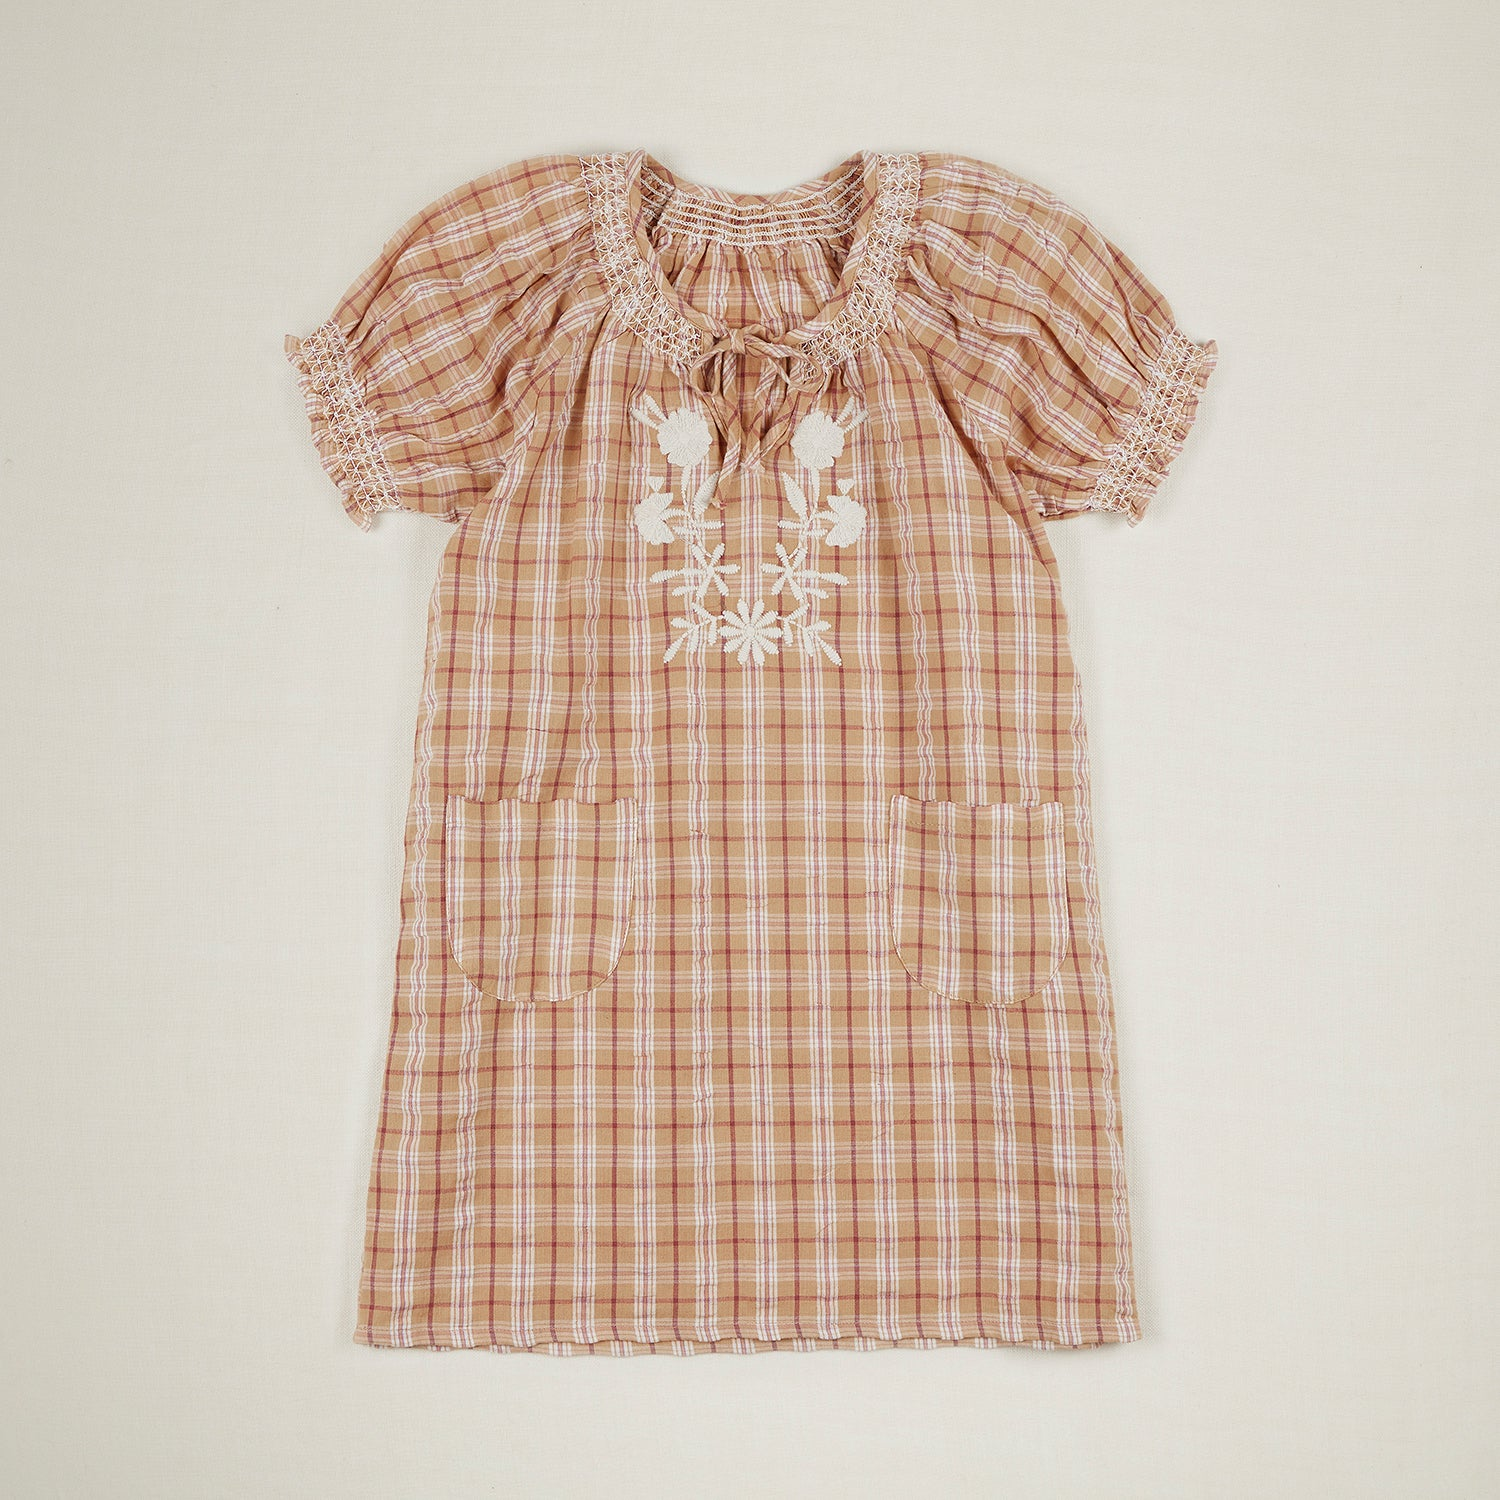 Apolina Pol Kid's Embroidered Short Puff Sleeve Dress Hay Farm Check | BIEN BIEN www.bienbienshop.com